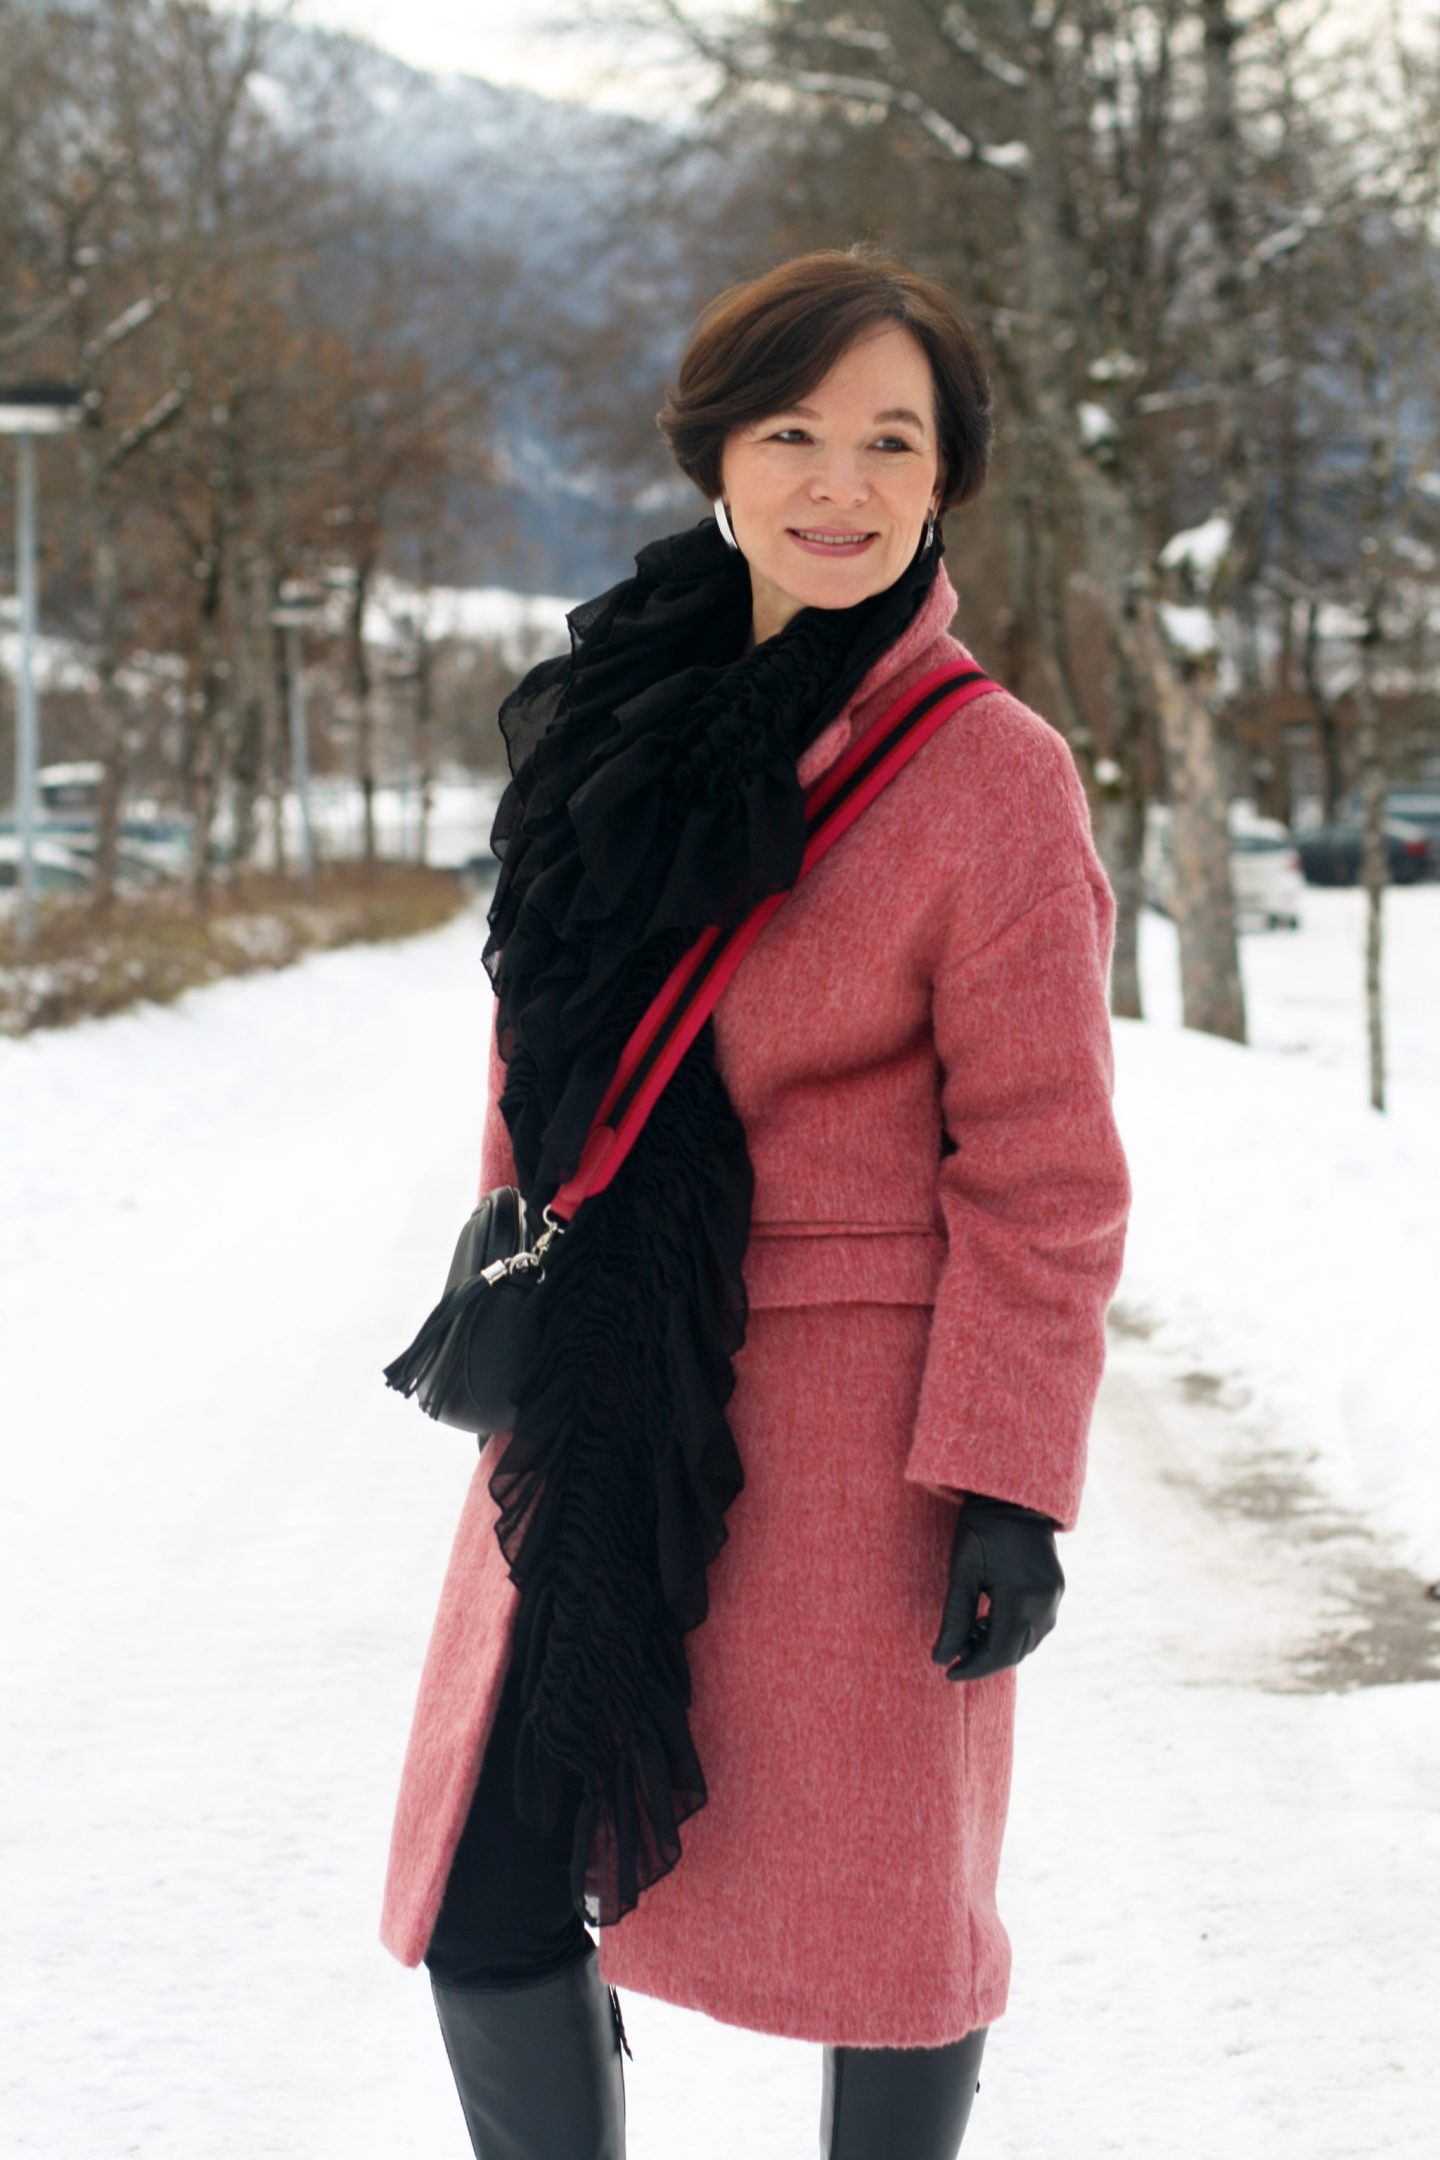 Wintermantel Rosa Pink 50plus Blogger LadyofStyle